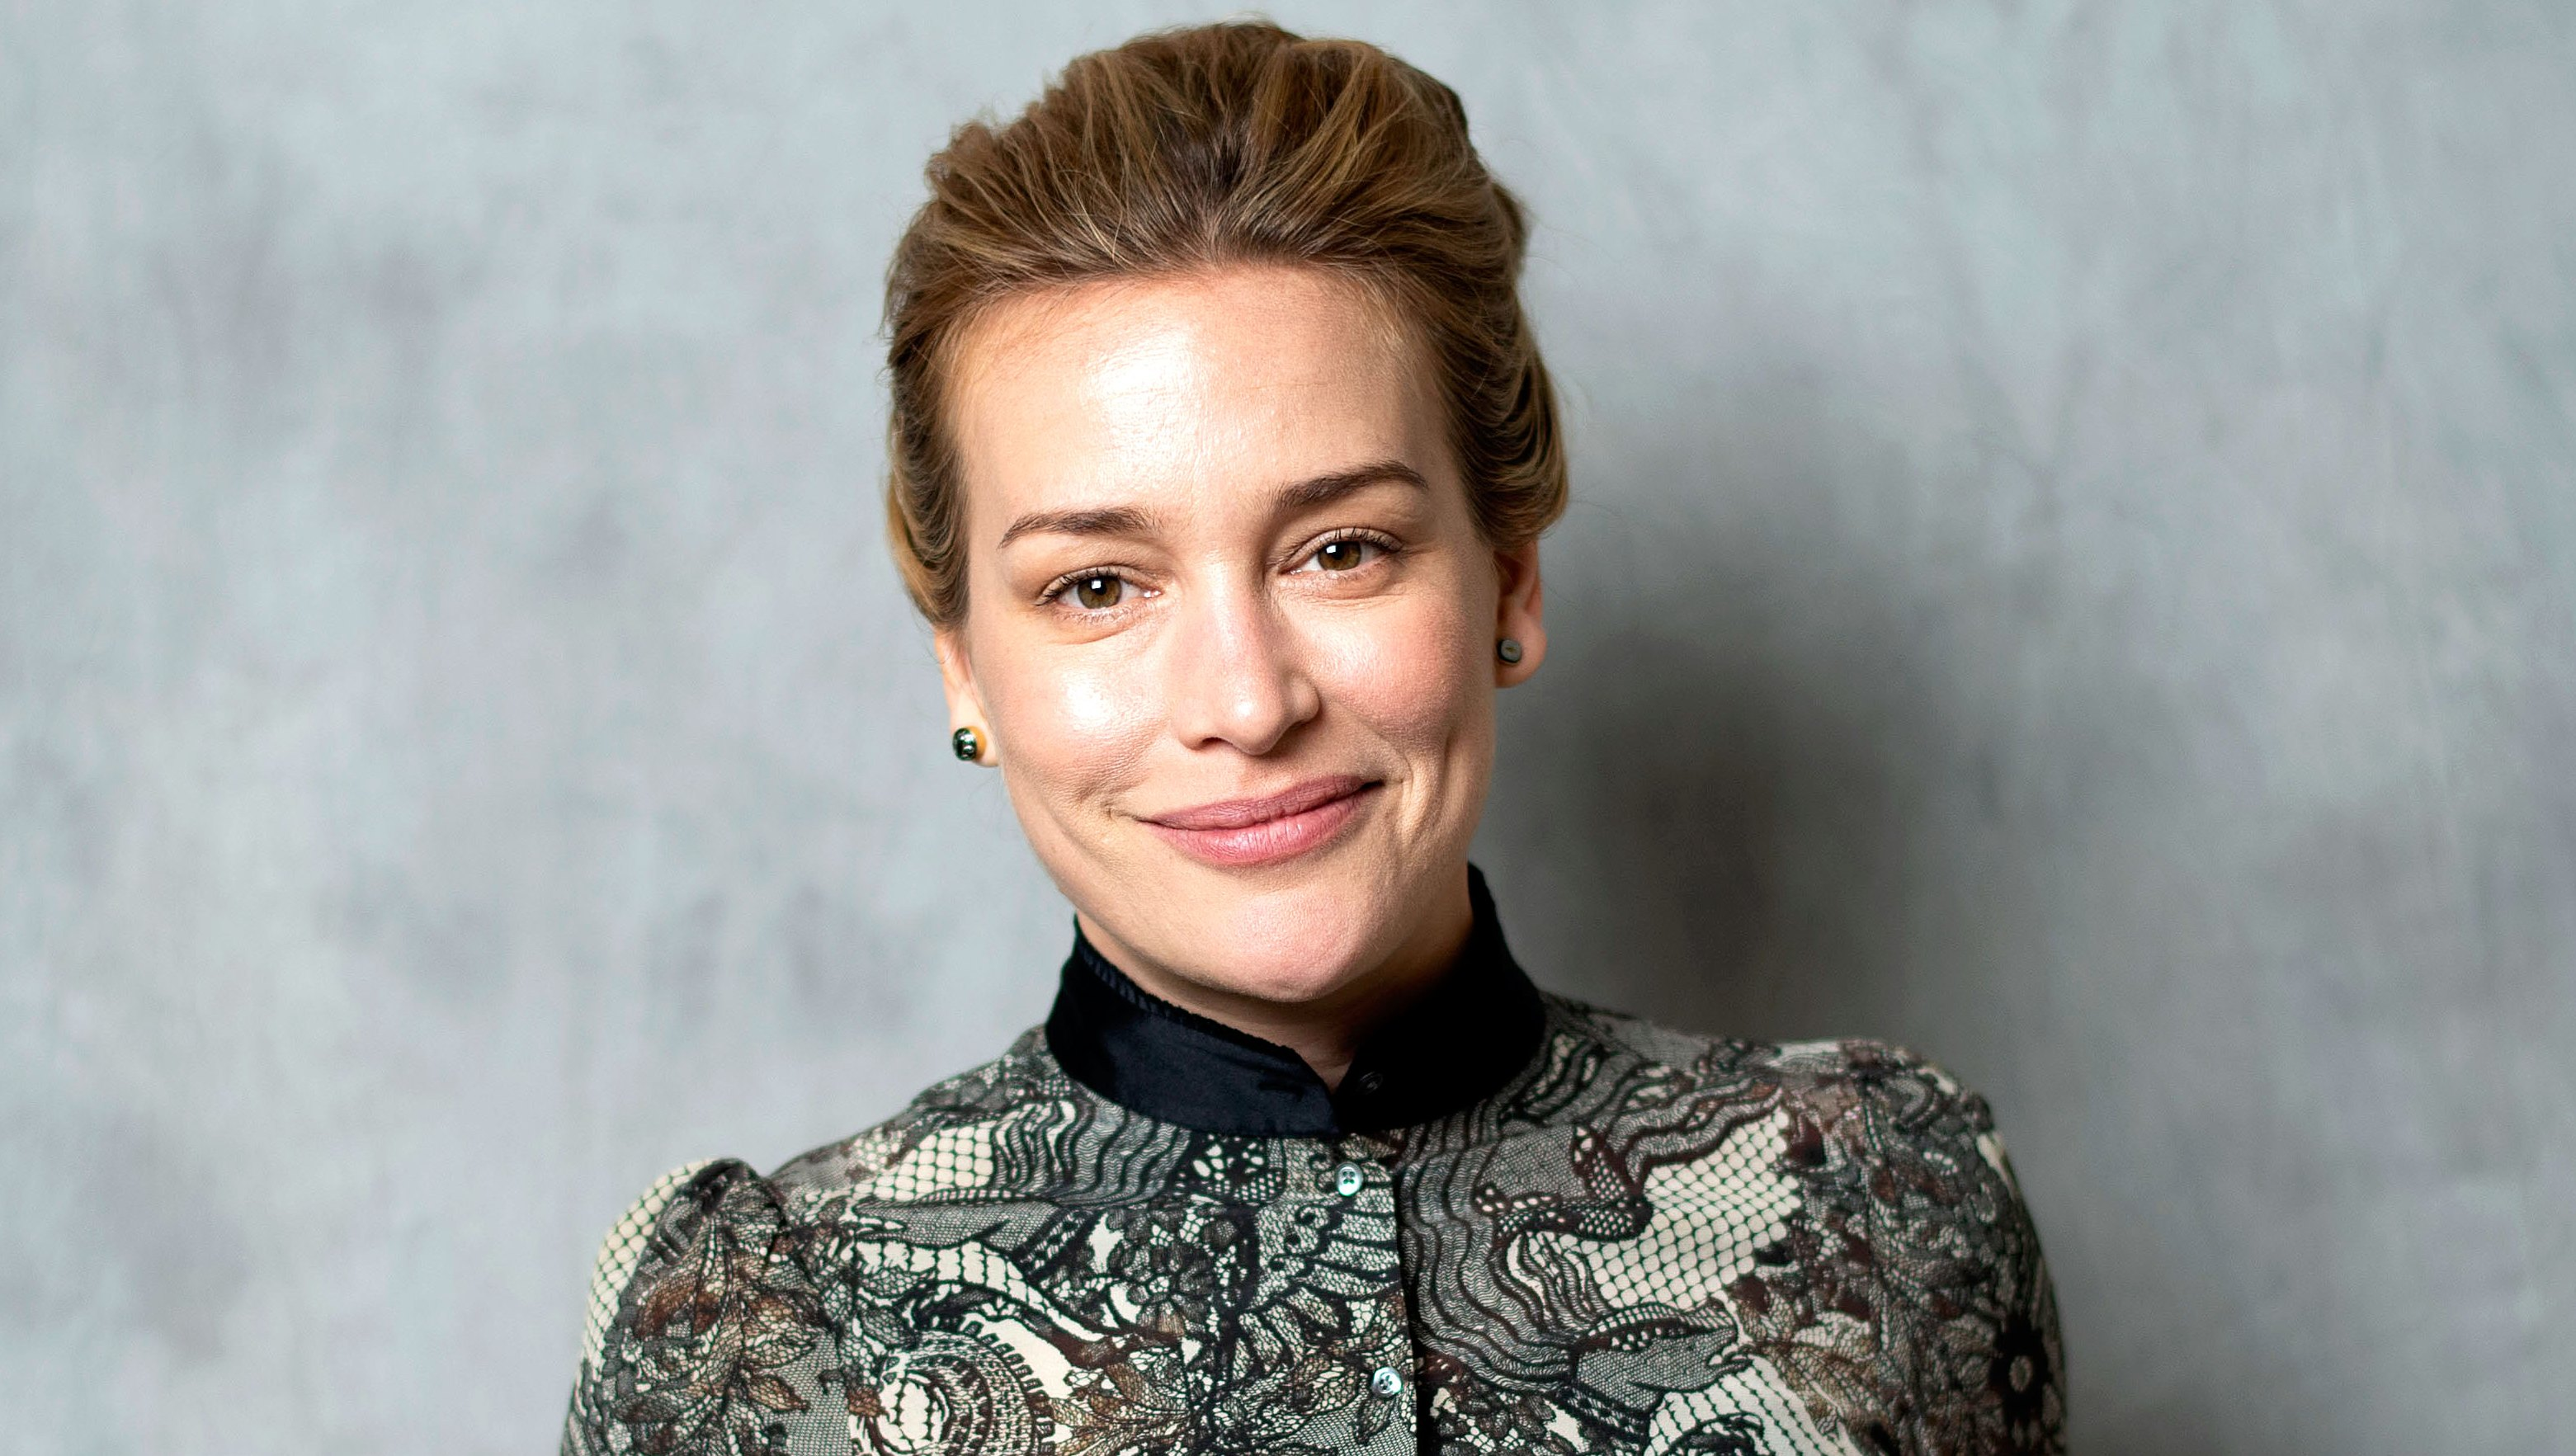 Piper Perabo Doesn't Have Plans For Children After She 'Hit the Jackpot' With Her Stepdaughter